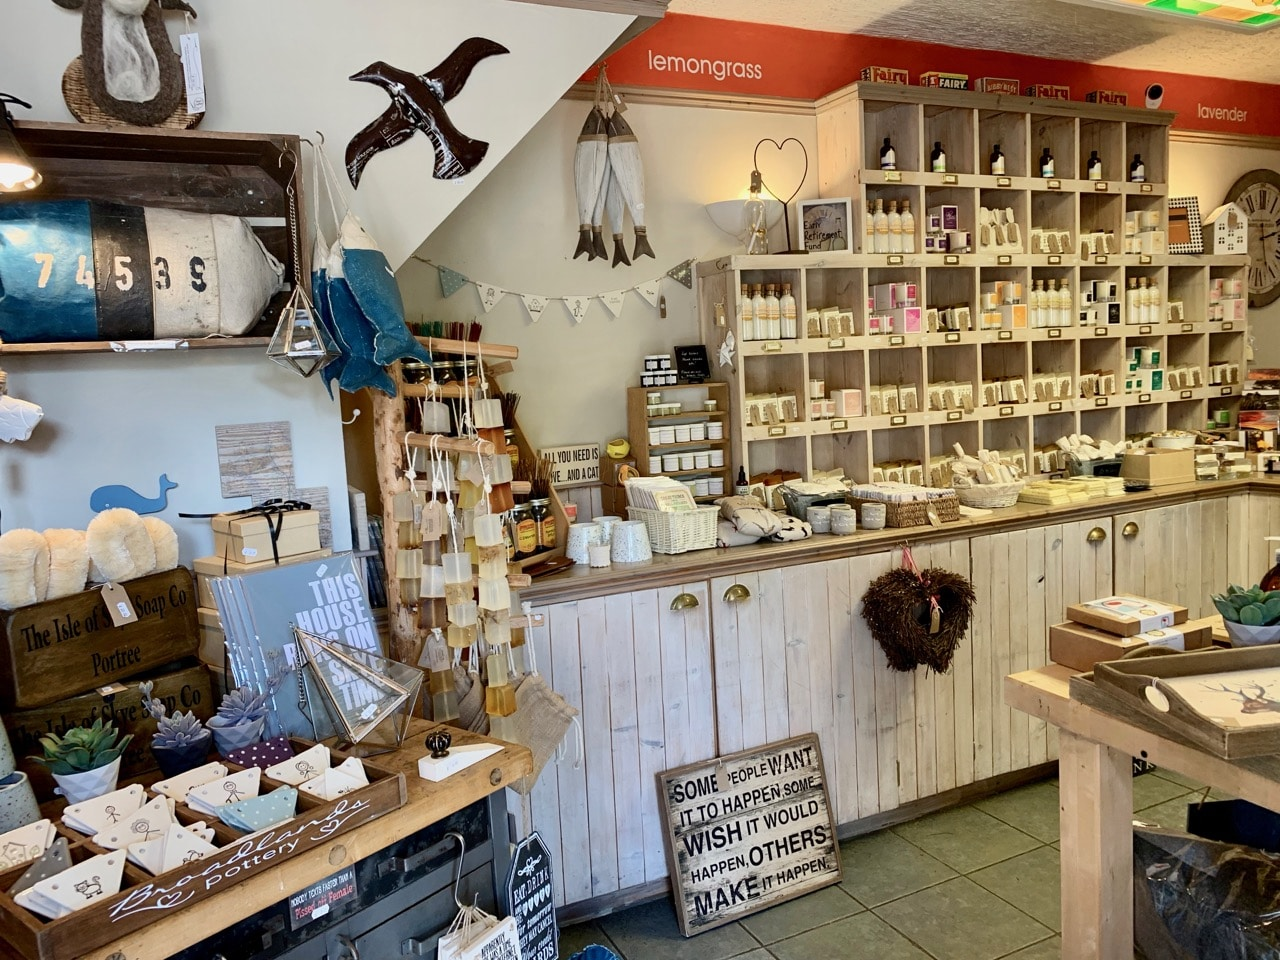 Things To Do In Skye: Shop for locally made soap in Portree.